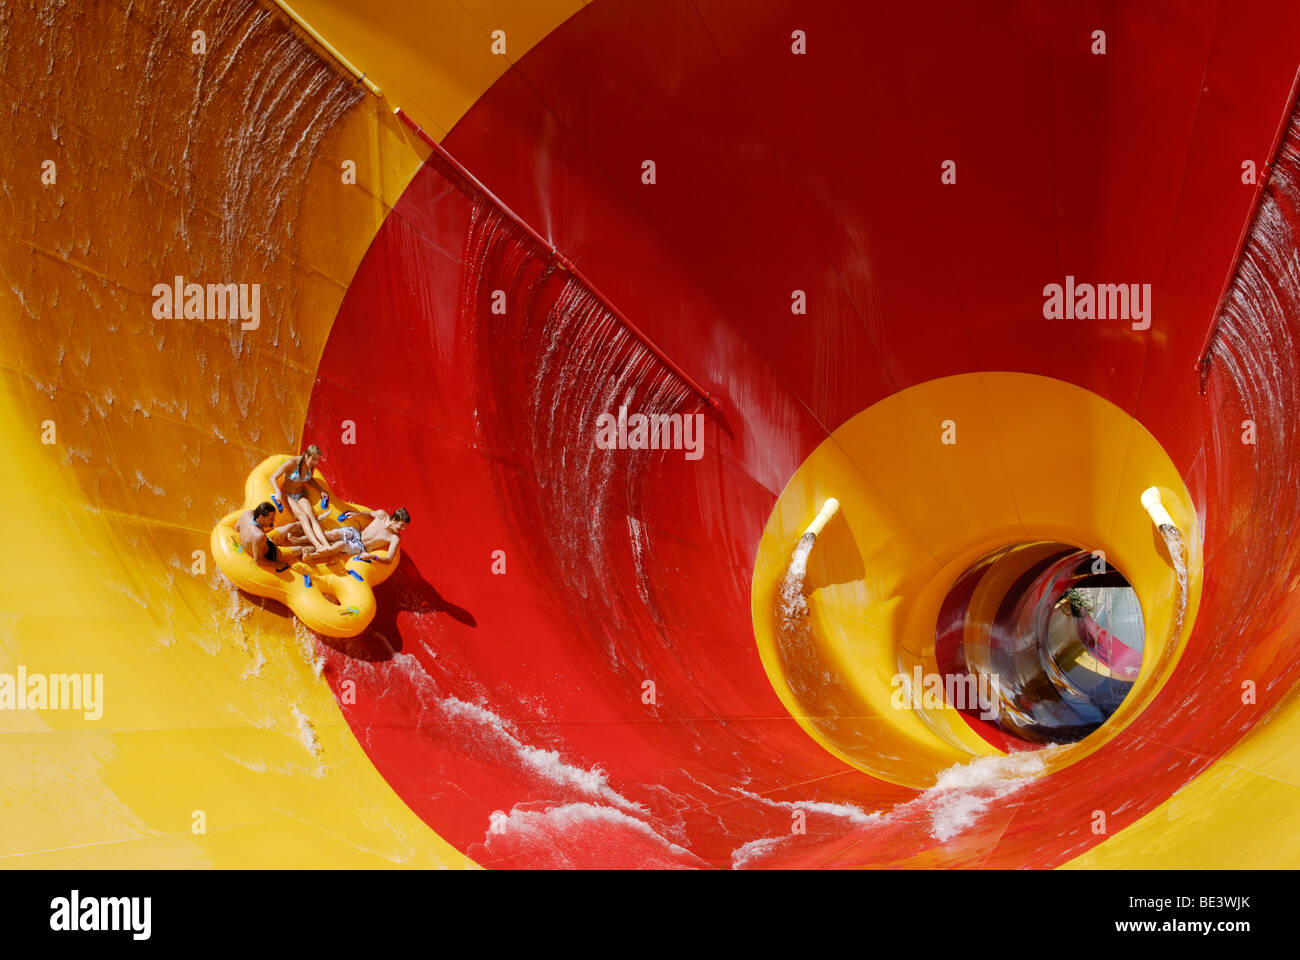 Water park ride - Stock Image